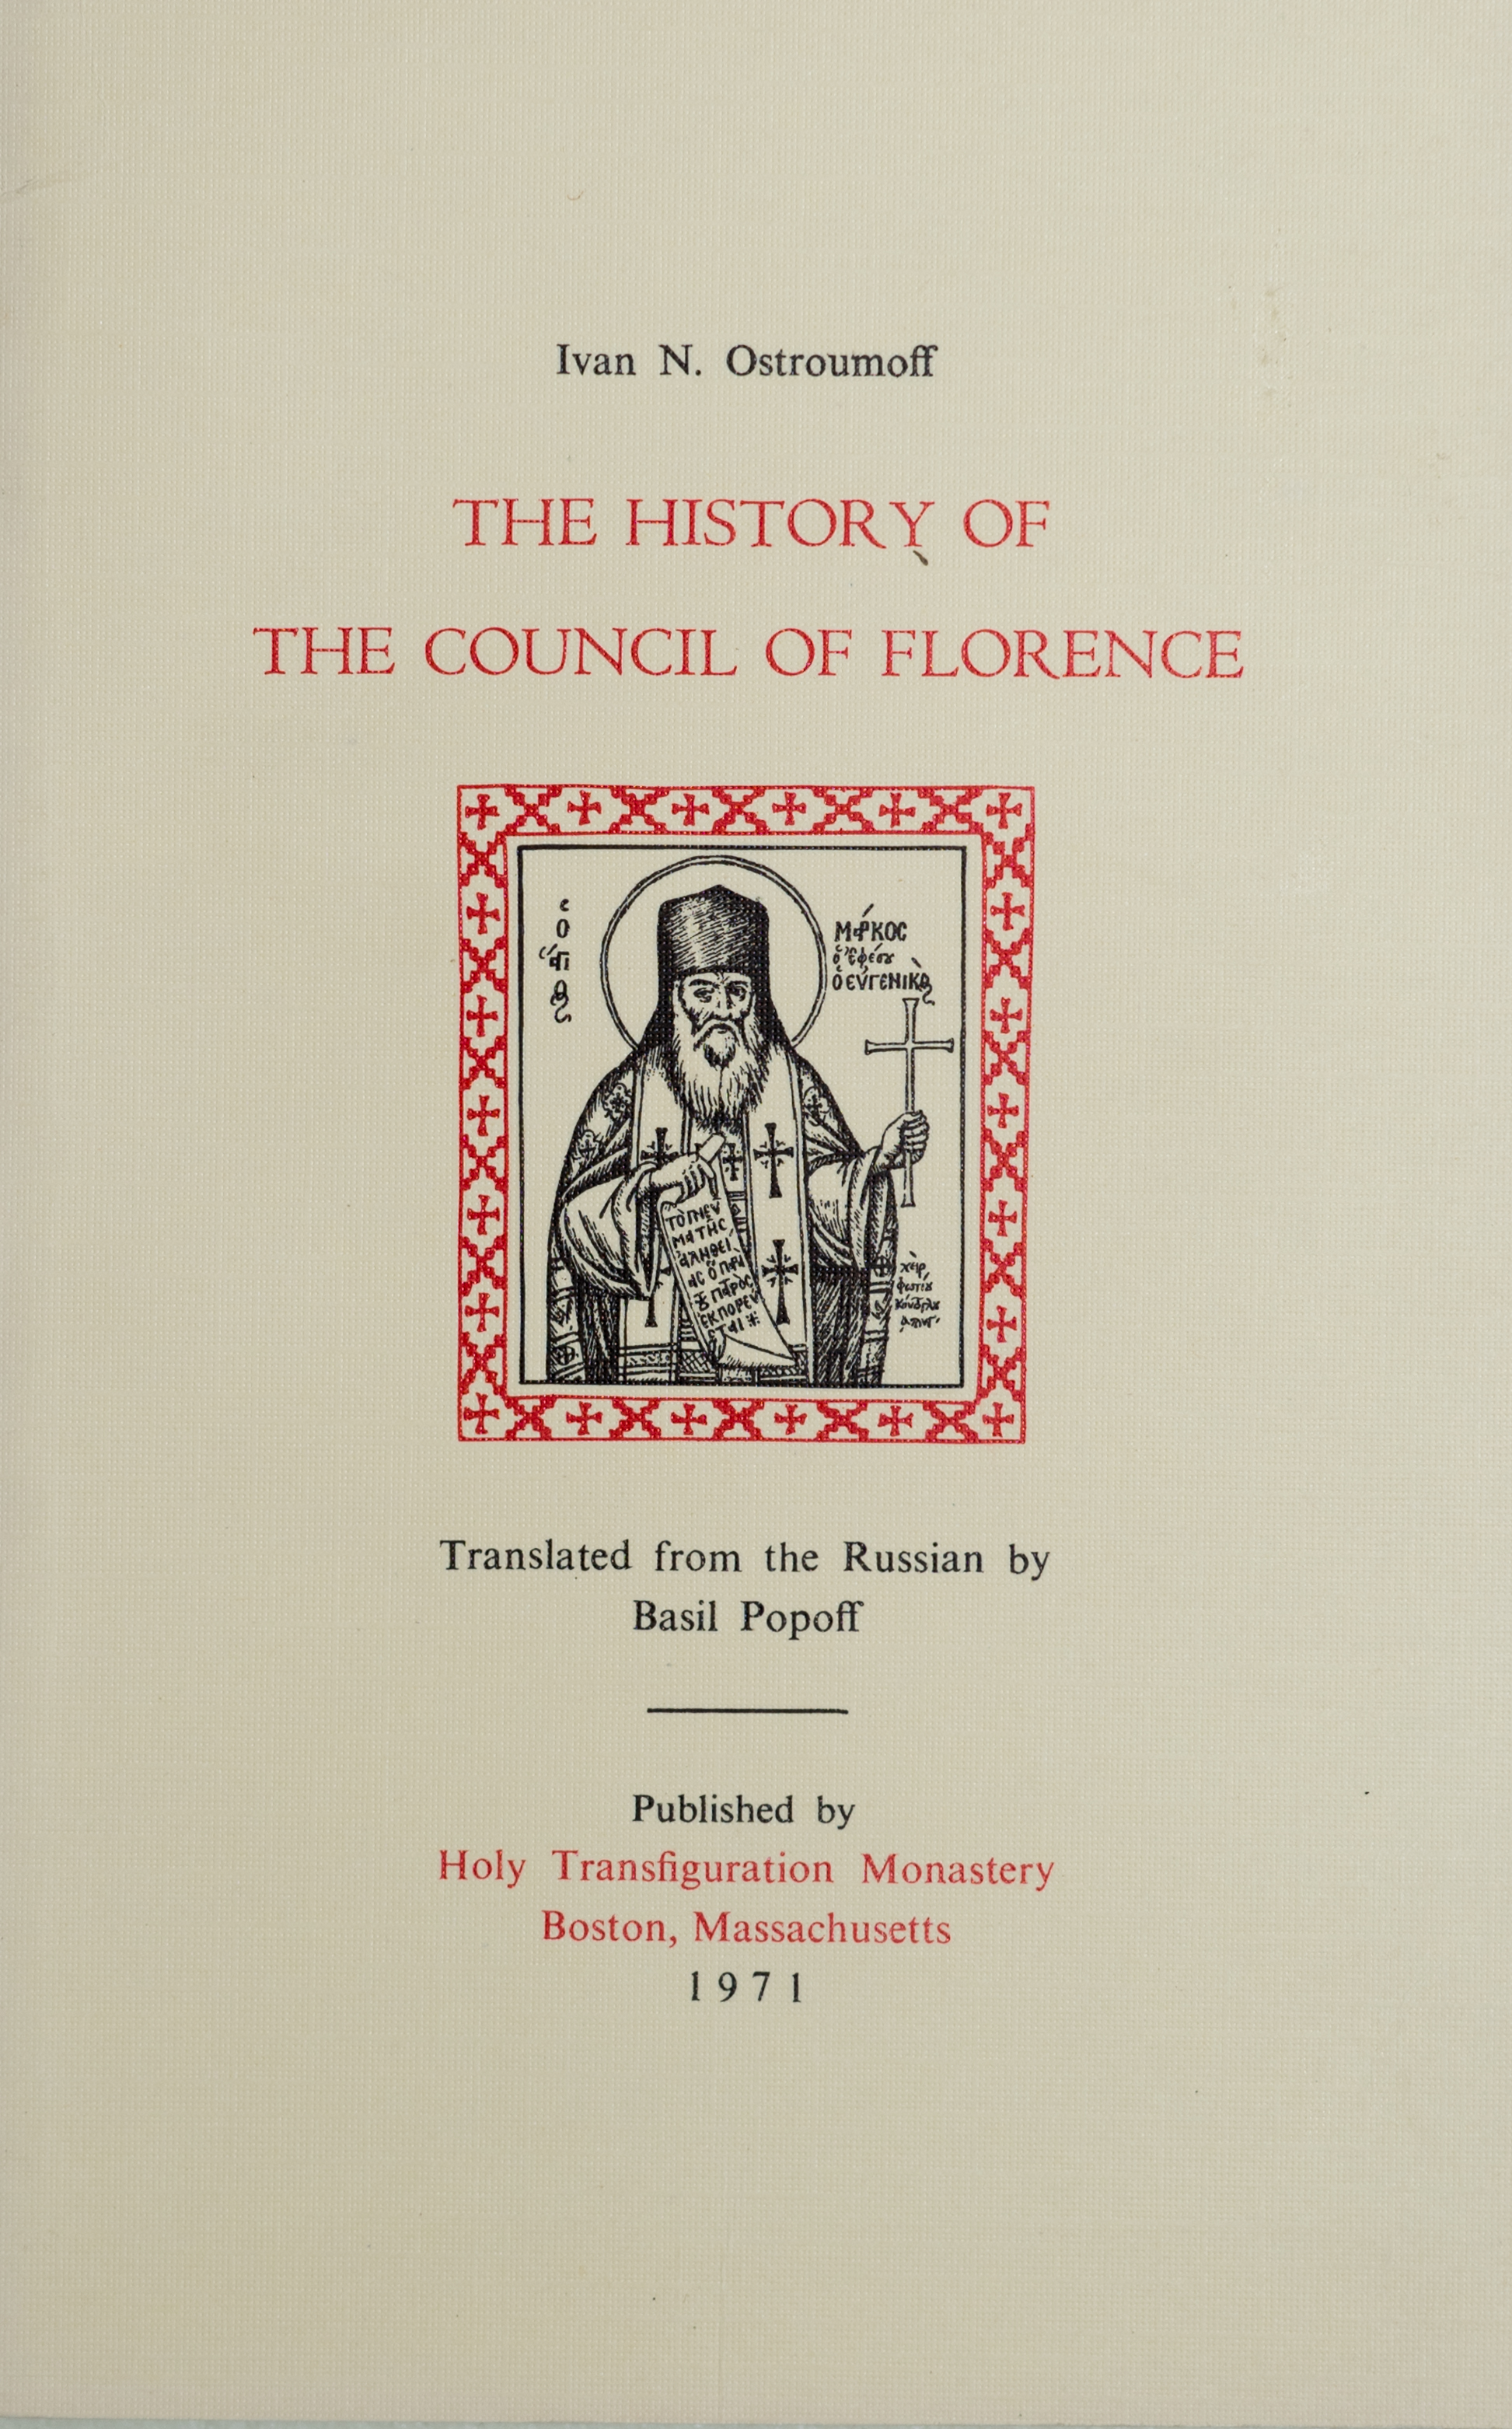 The History of the Council of Florence